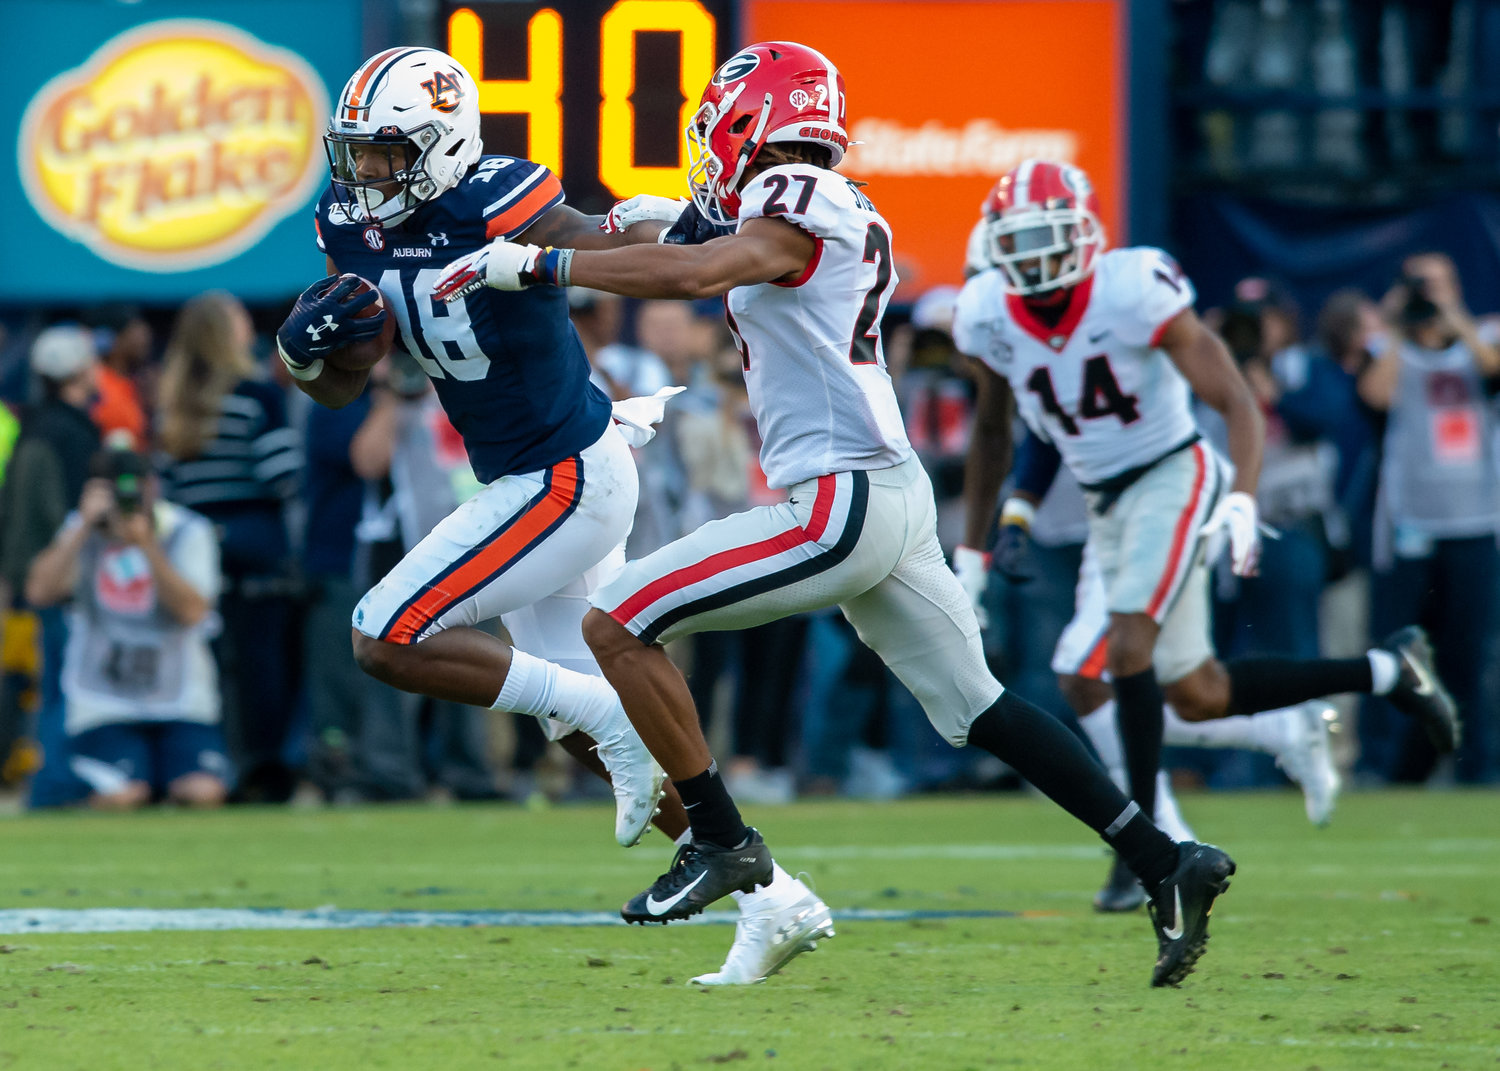 Auburn Tigers wide receiver Seth Williams (18)runs past Georgia Bulldogs defensive back Eric Stokes (27) during the first half of Saturday's game, at Jordan-Hare Stadium in Auburn,, AL. Daily Mountain Eagle -  Jeff Johnsey